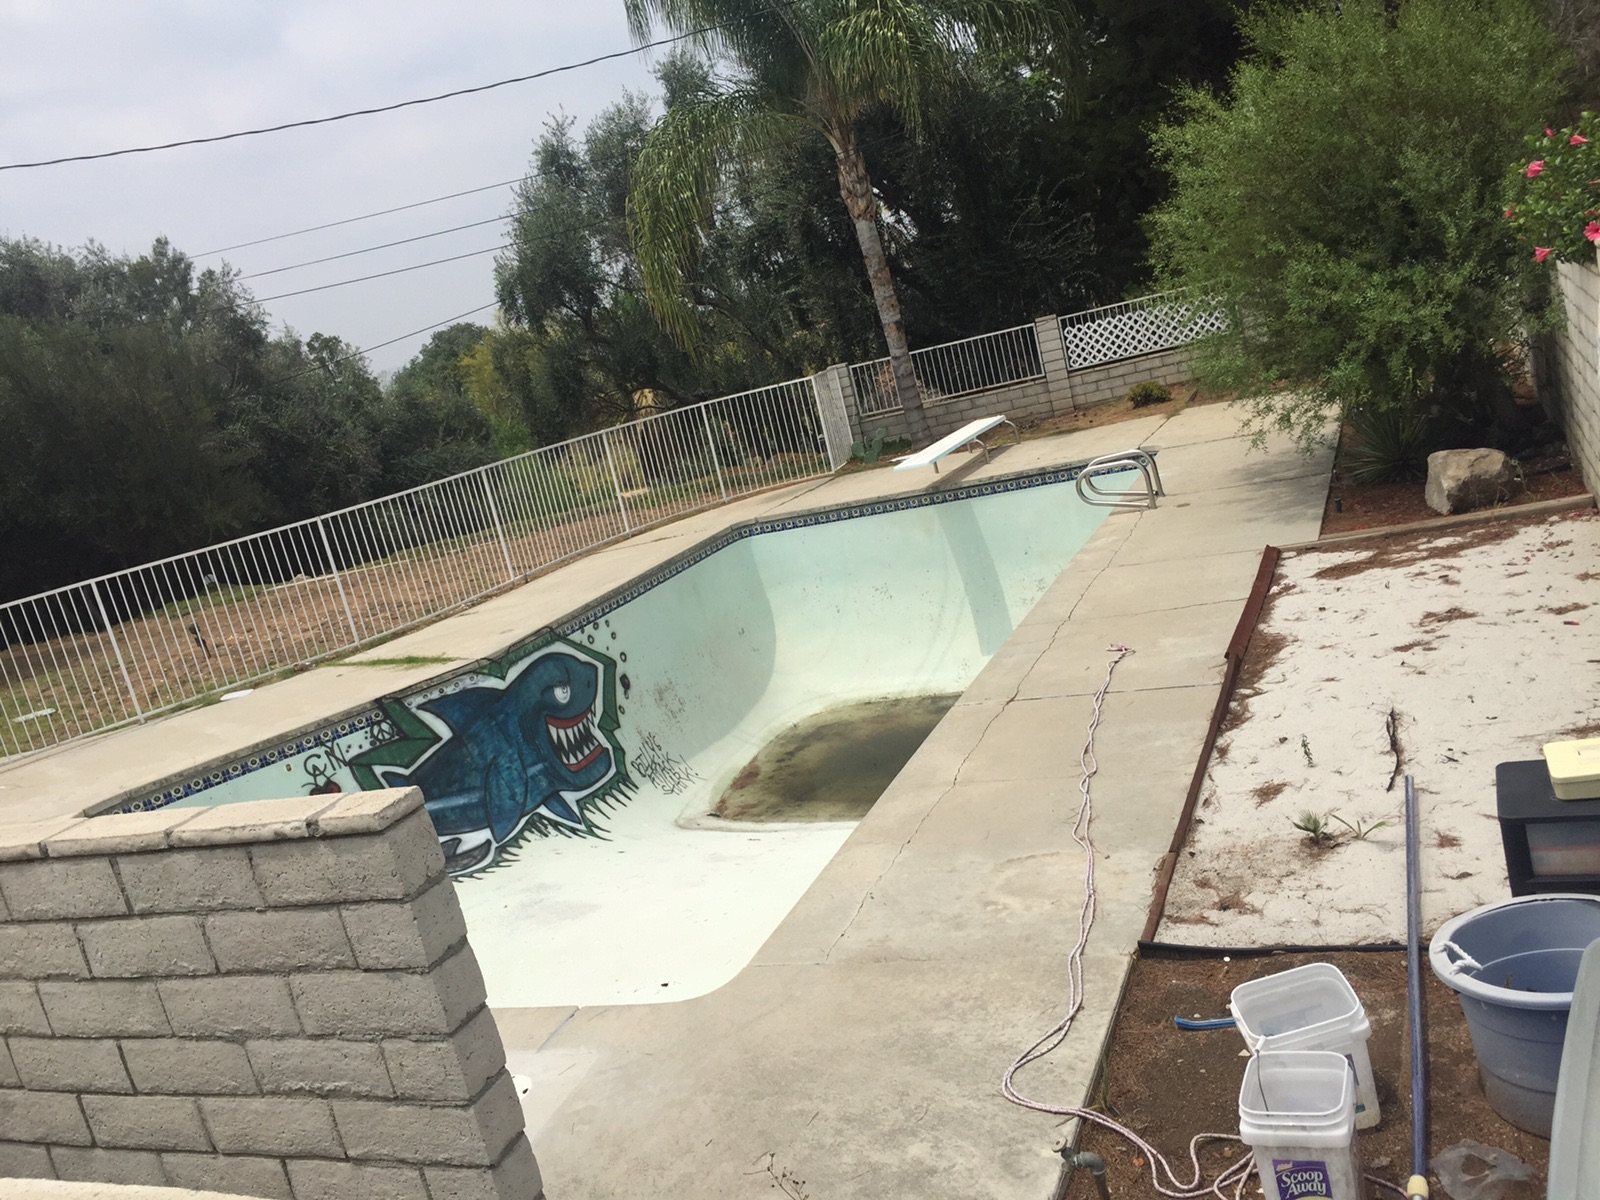 Before: Old Damaged Vandalized Pool In Disrepair